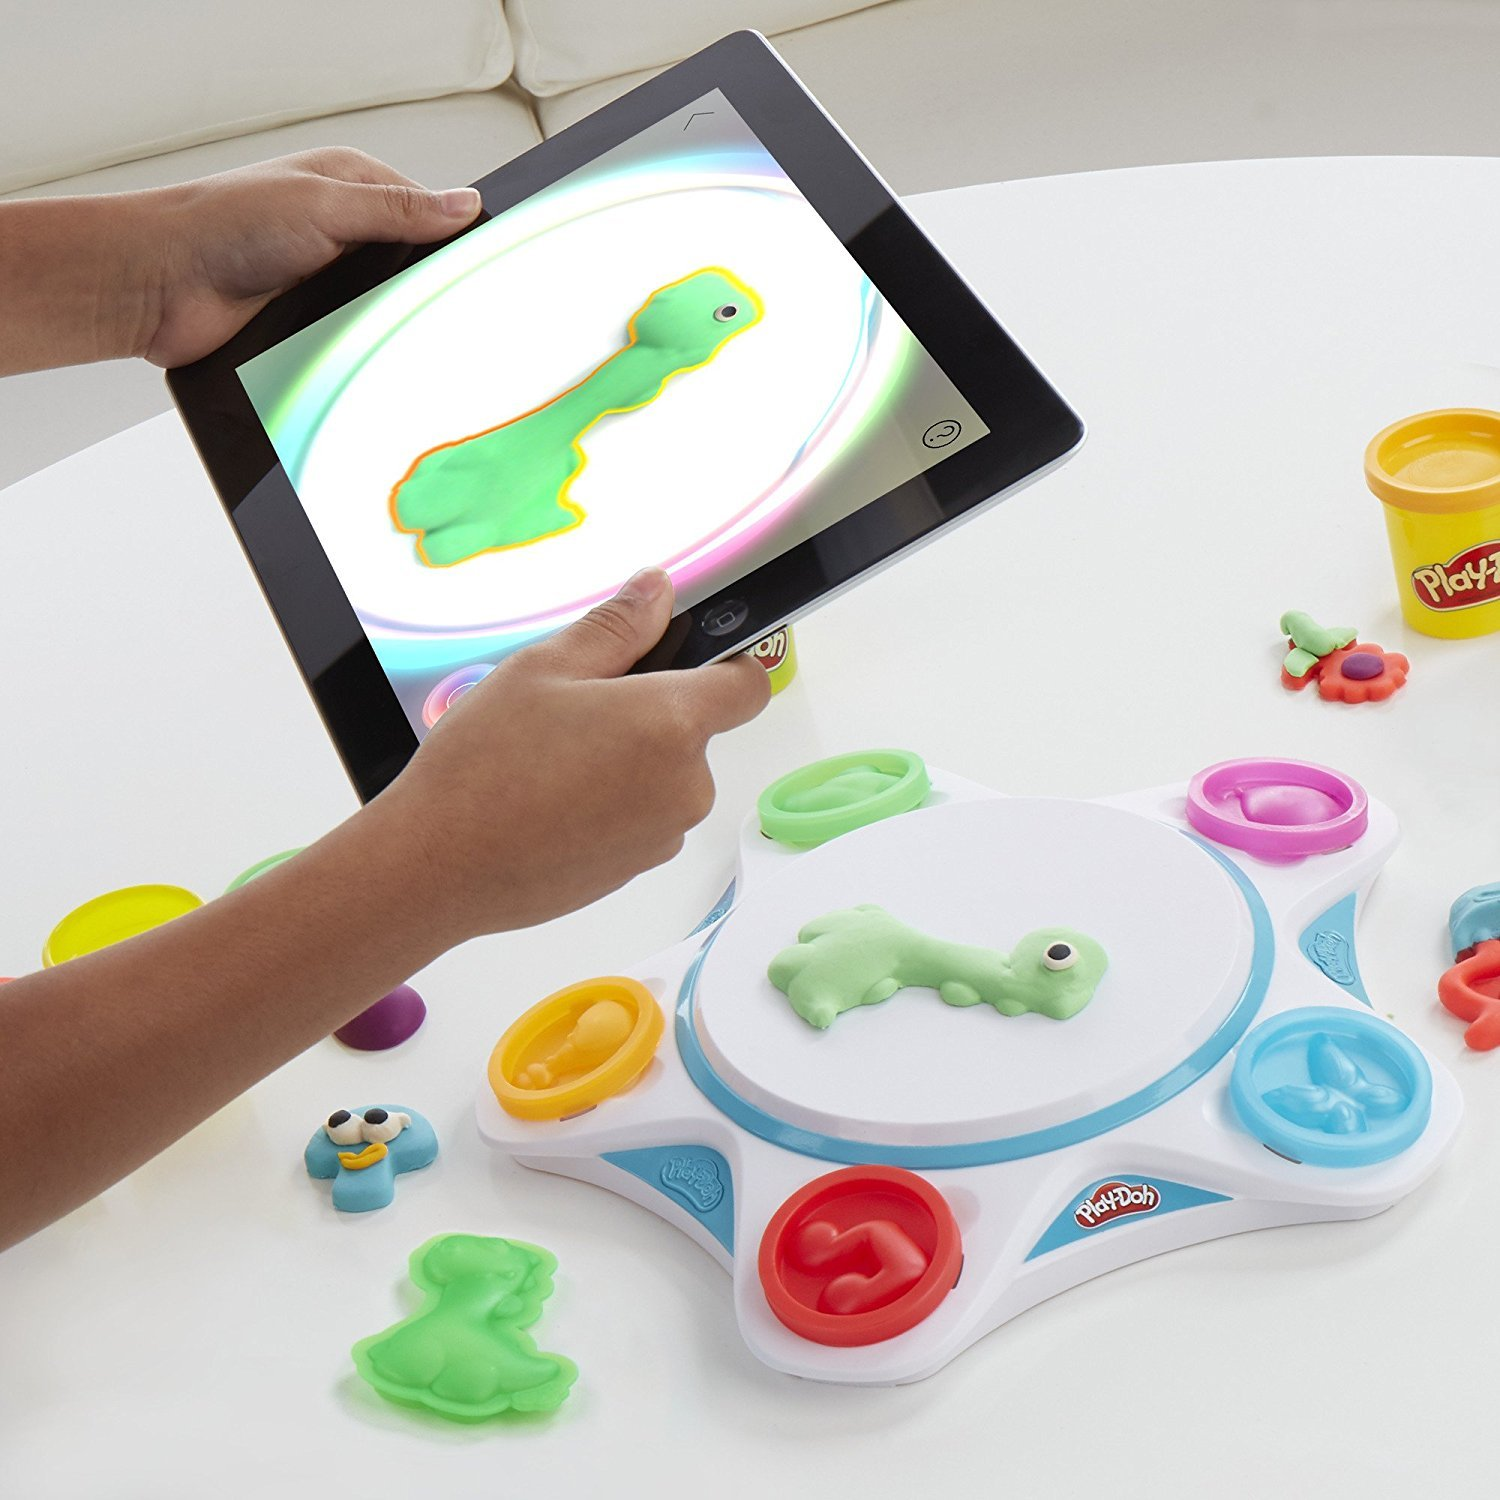 Play-Doh Touch Shape to Life Studio Bundle with Glow In The Dark 2oz Hasbro